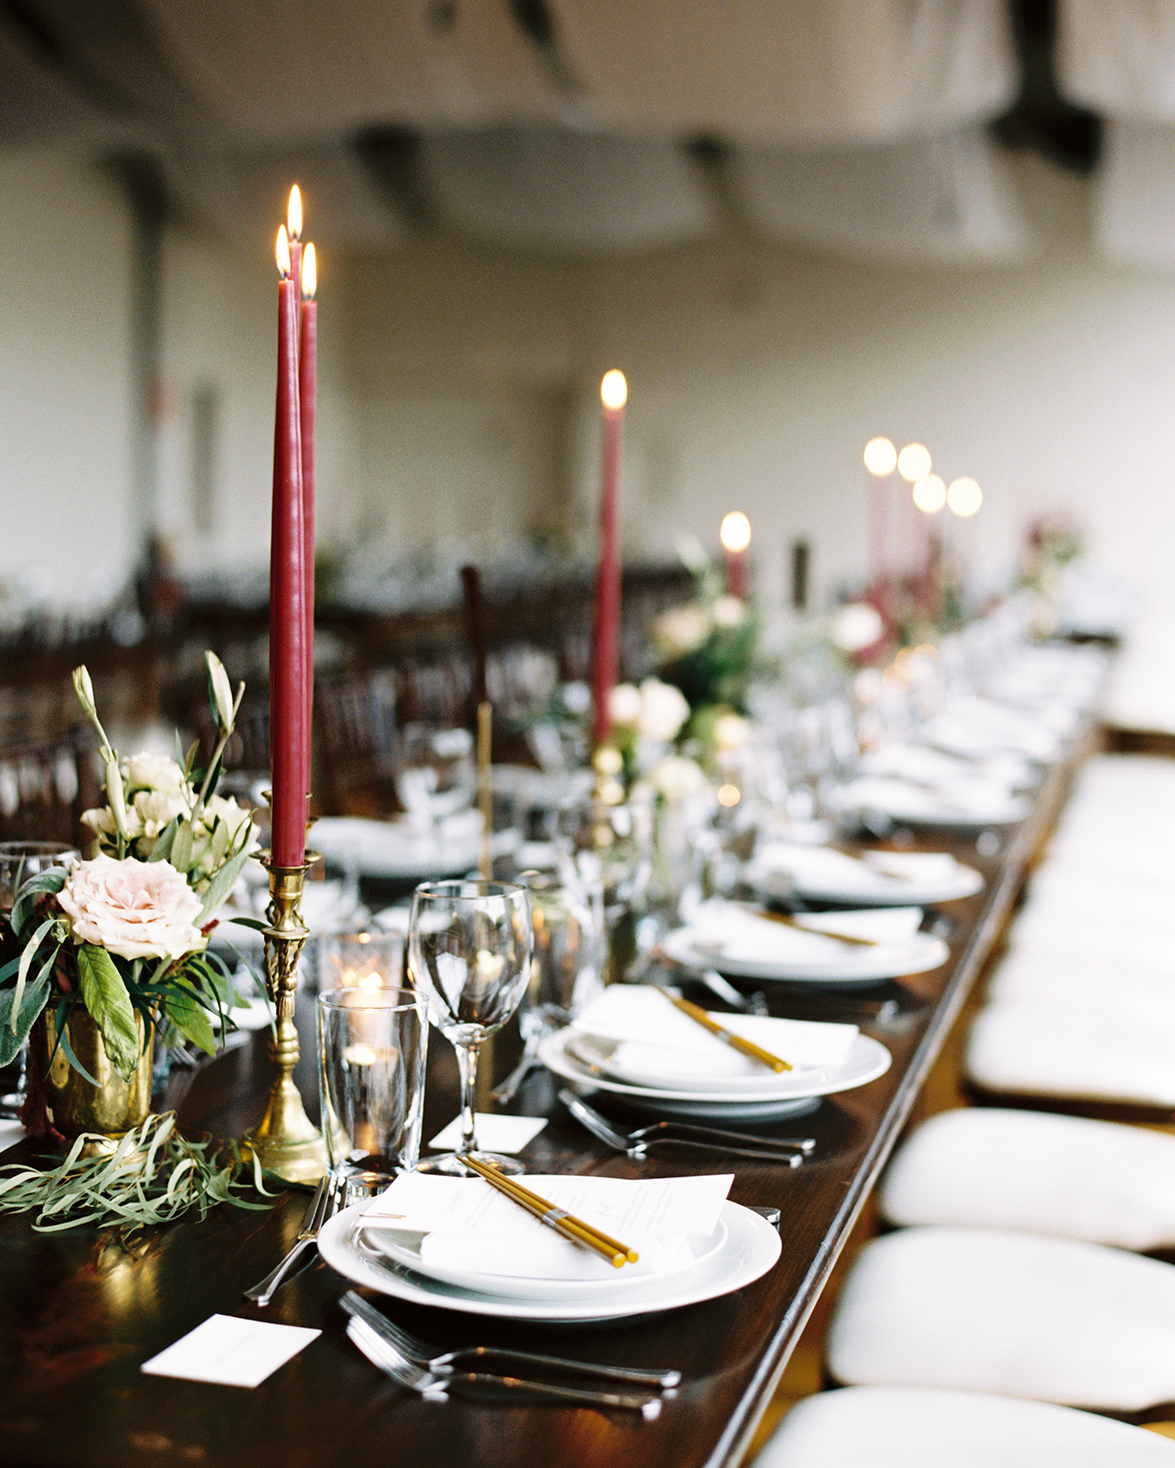 joanna jay wedding reception banquet table